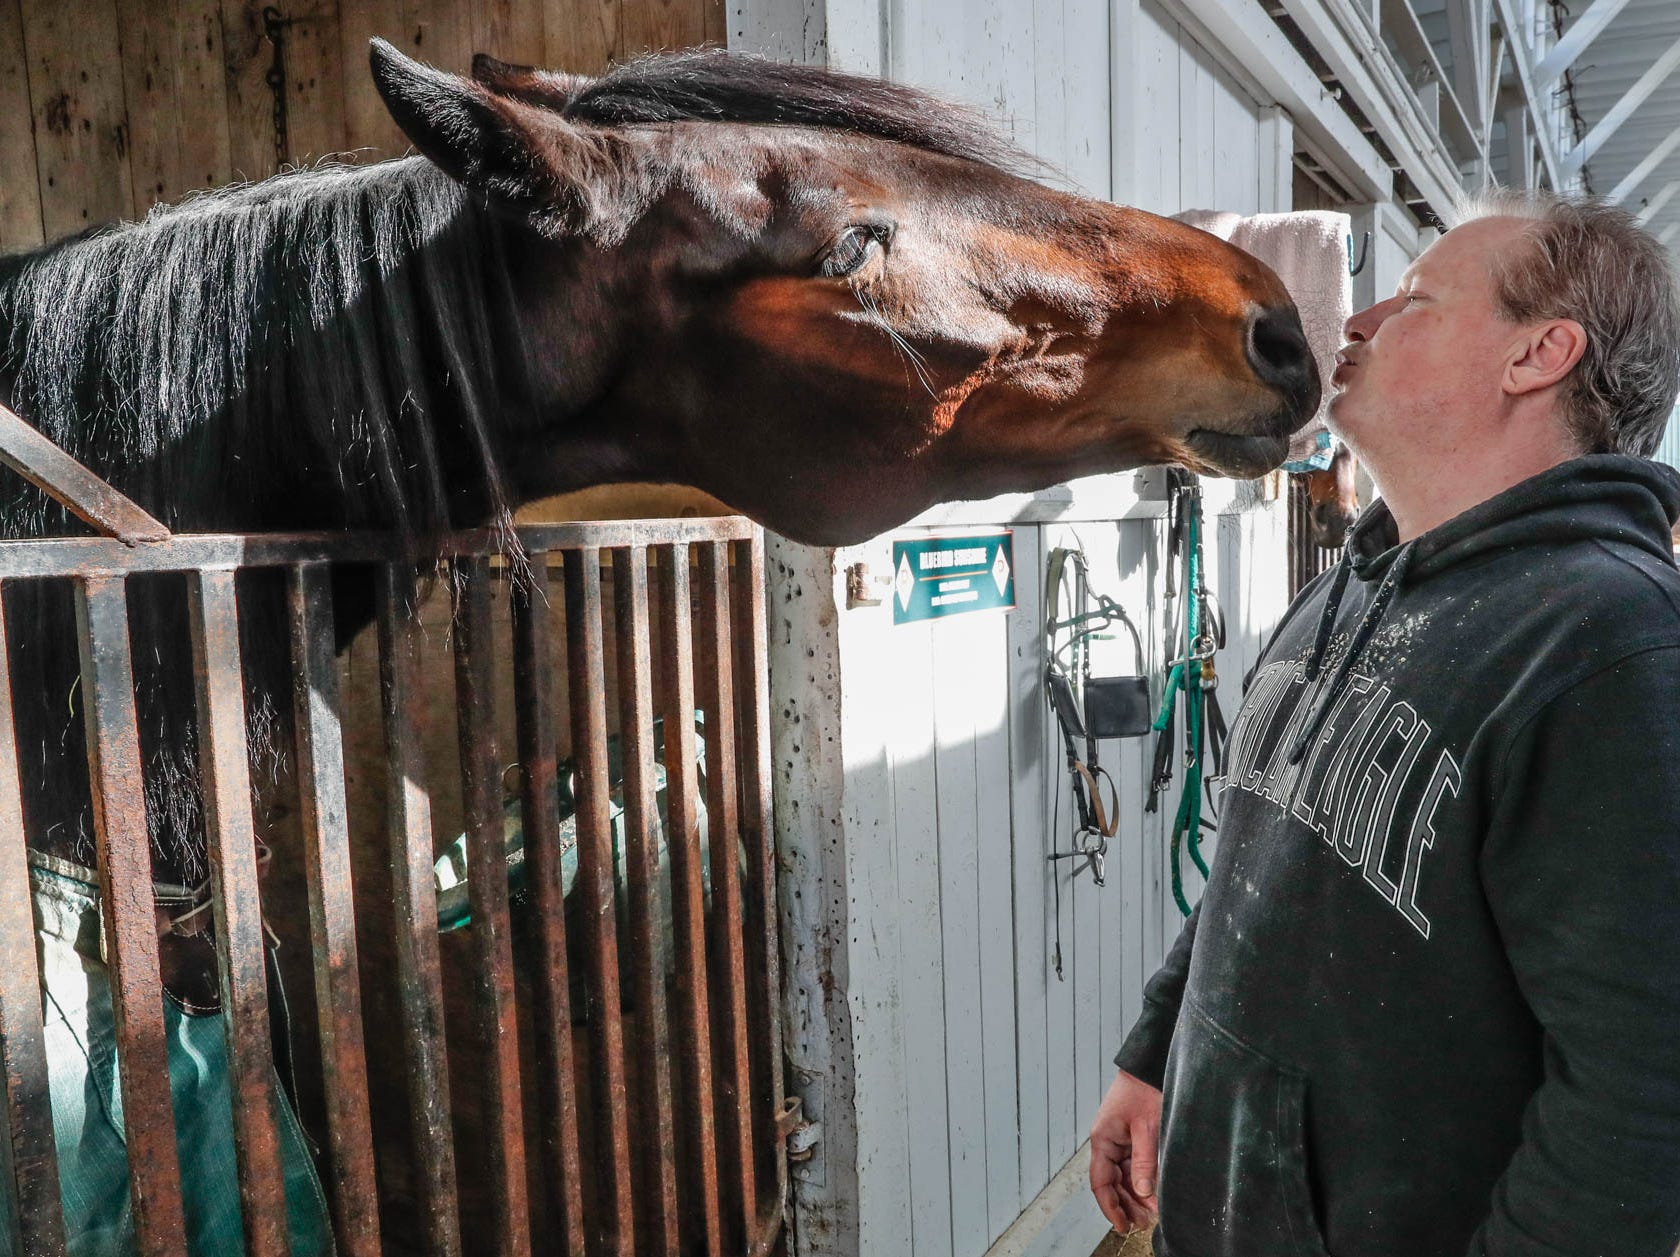 Mark P'Pool gets a kiss from his harness racing horse, Sunshine, inside the Mark P'Pool stables at the Indiana State Fairgrounds on Feb. 3, 2019.